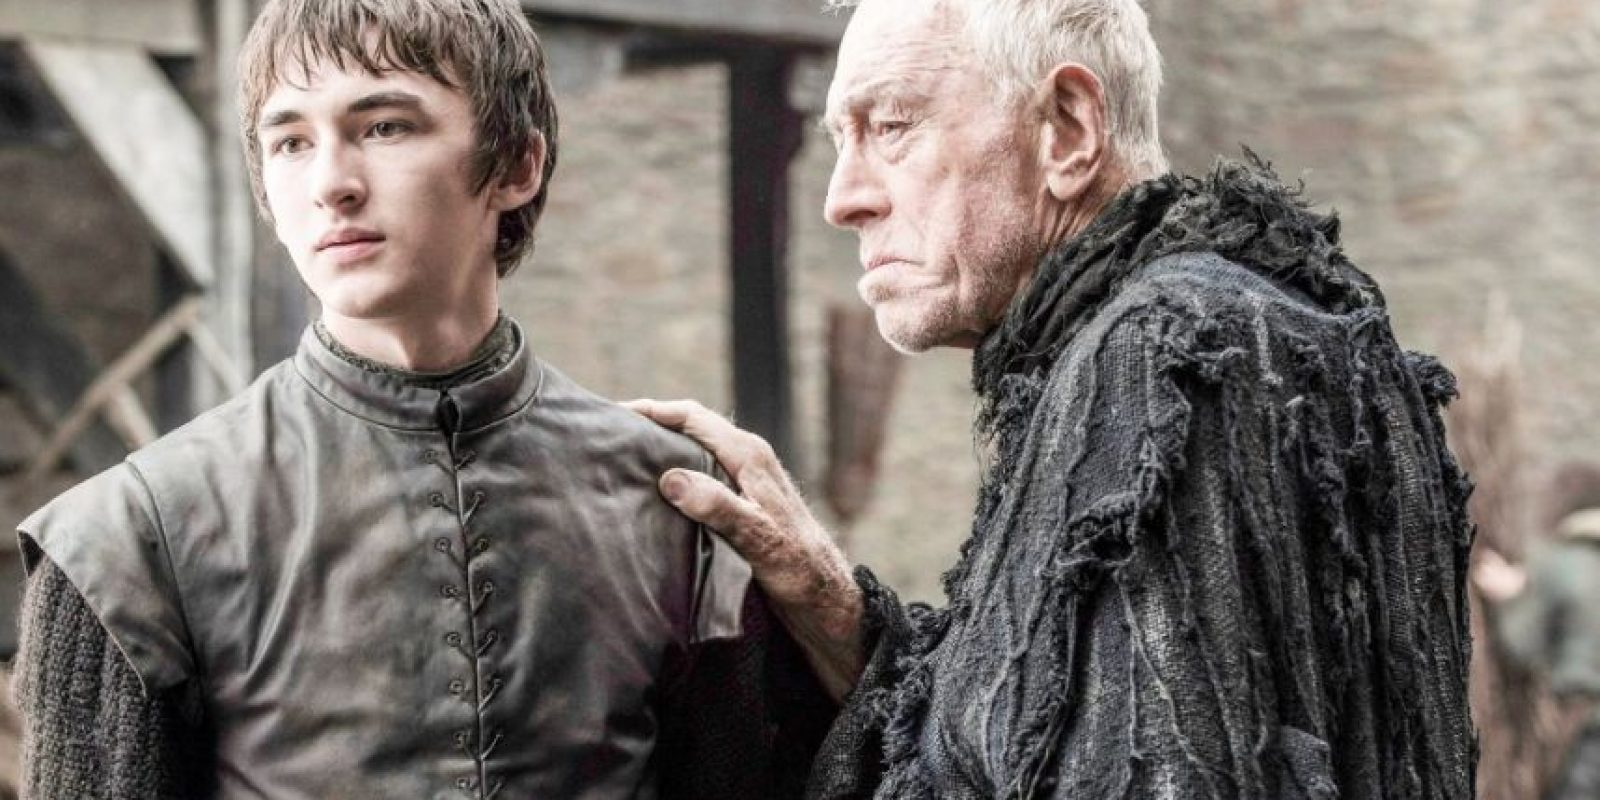 Bran Stark sigue su camino. Foto: Vía Facebook/Game of Thrones